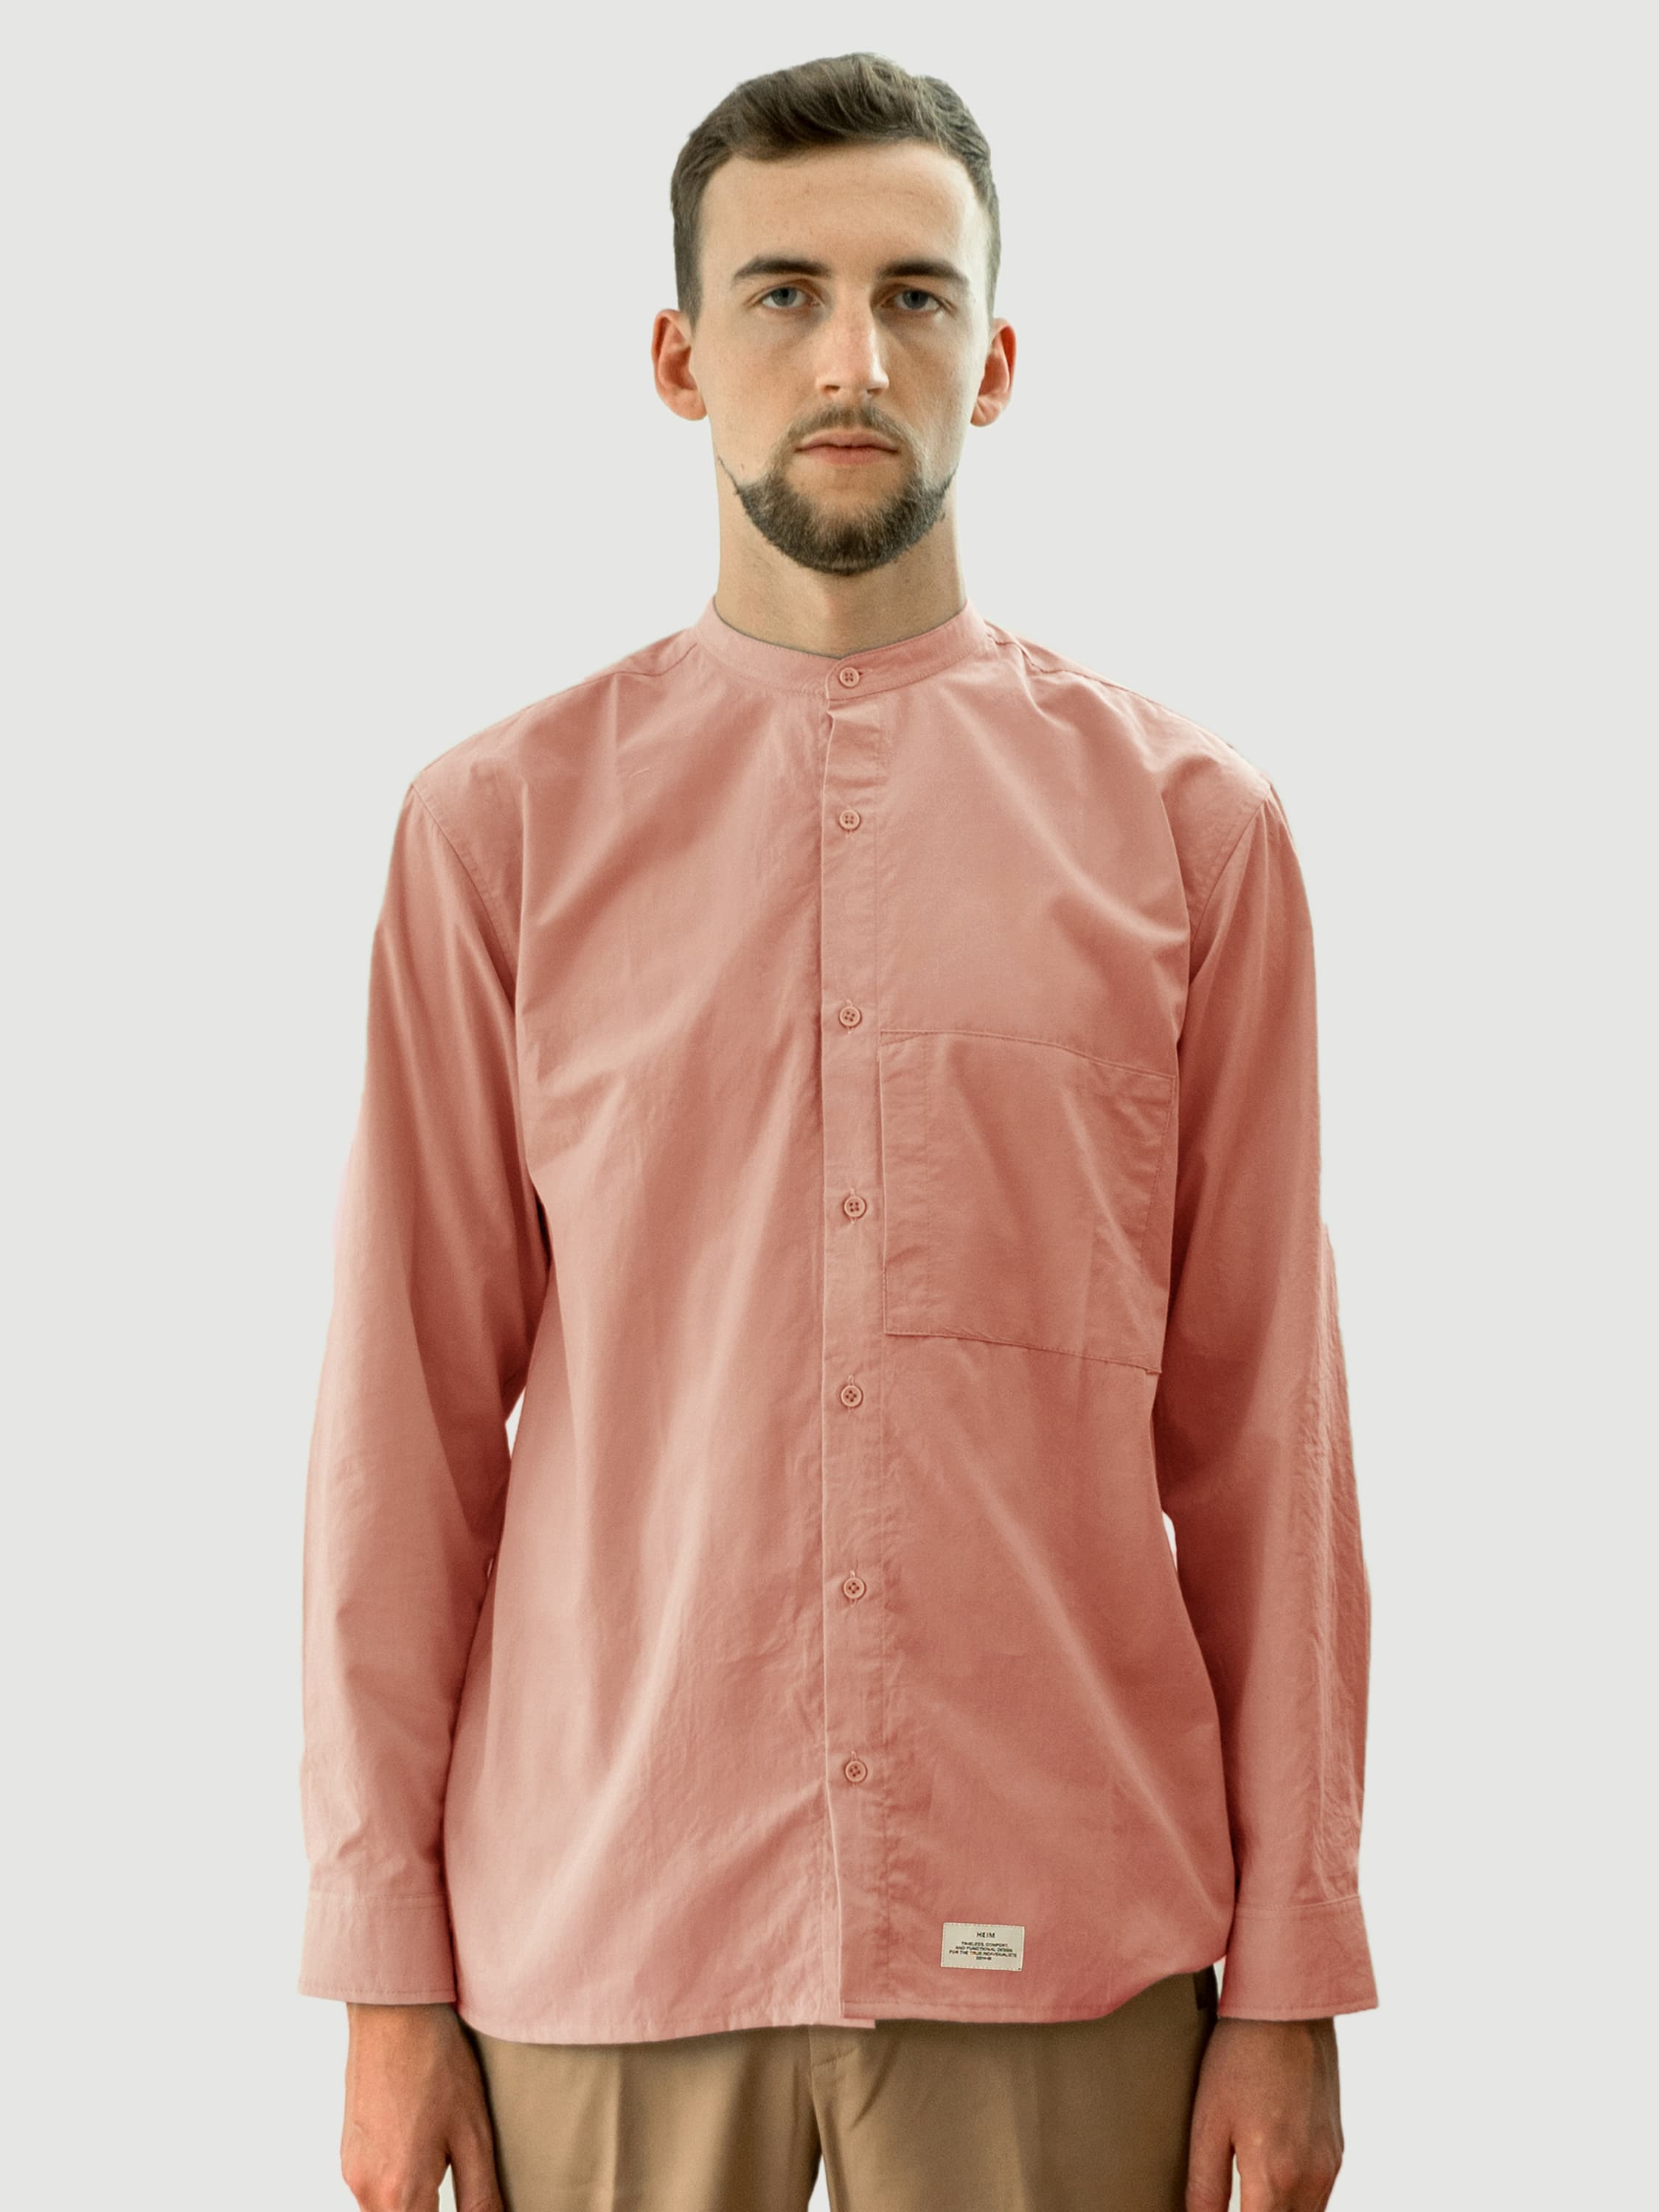 Common Collarless Salmon Cotton Shirt